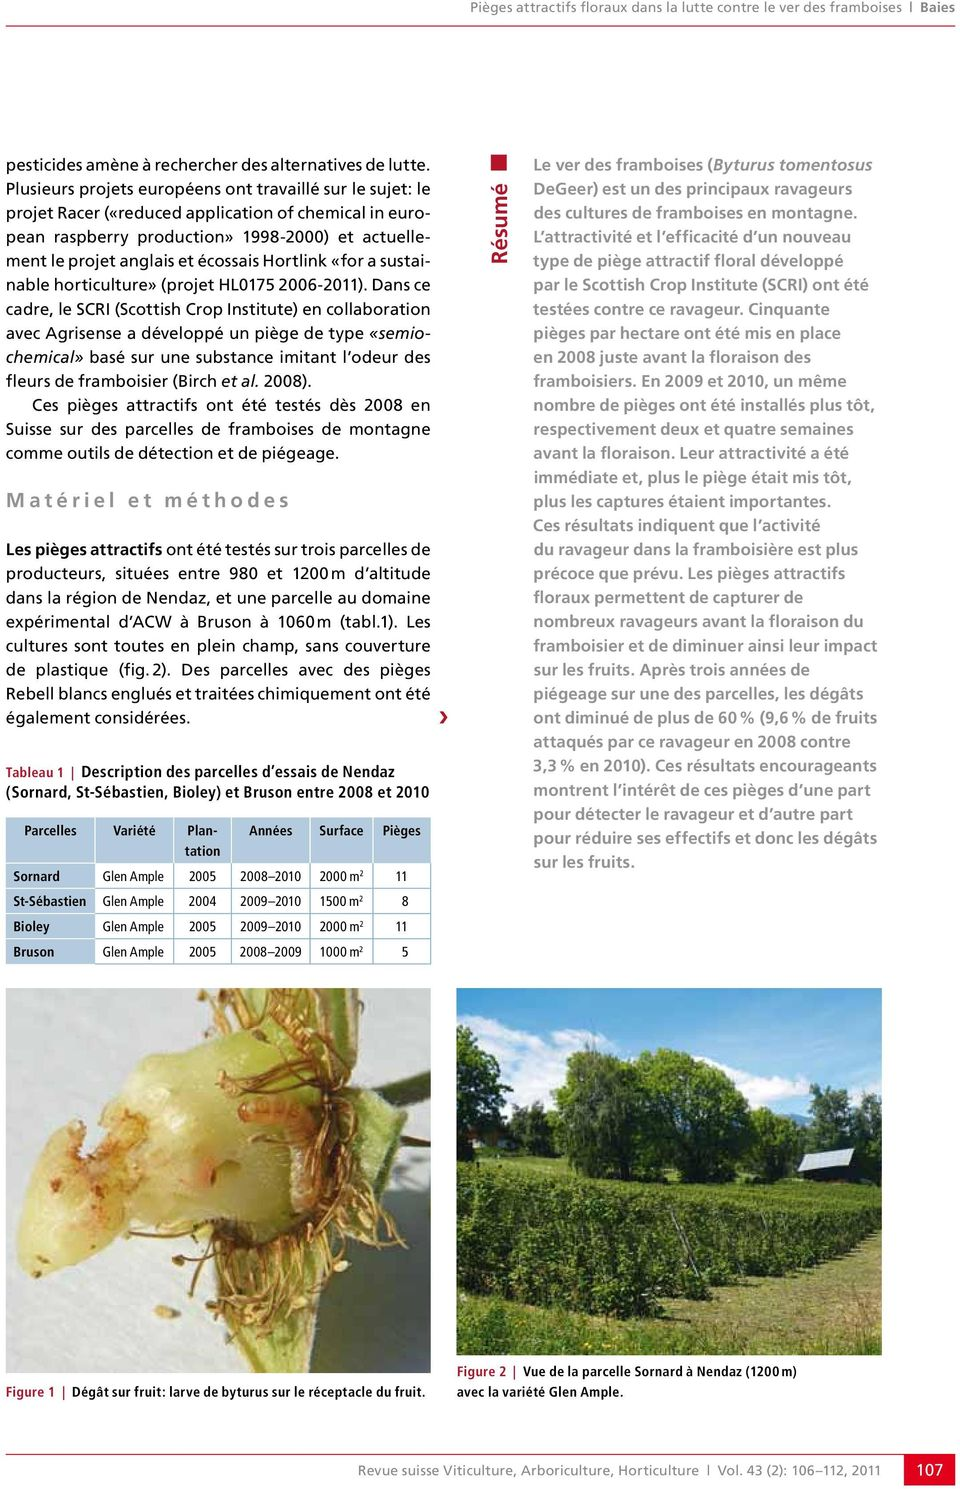 «for a sustainable horticulture» (projet HL75 26-2).